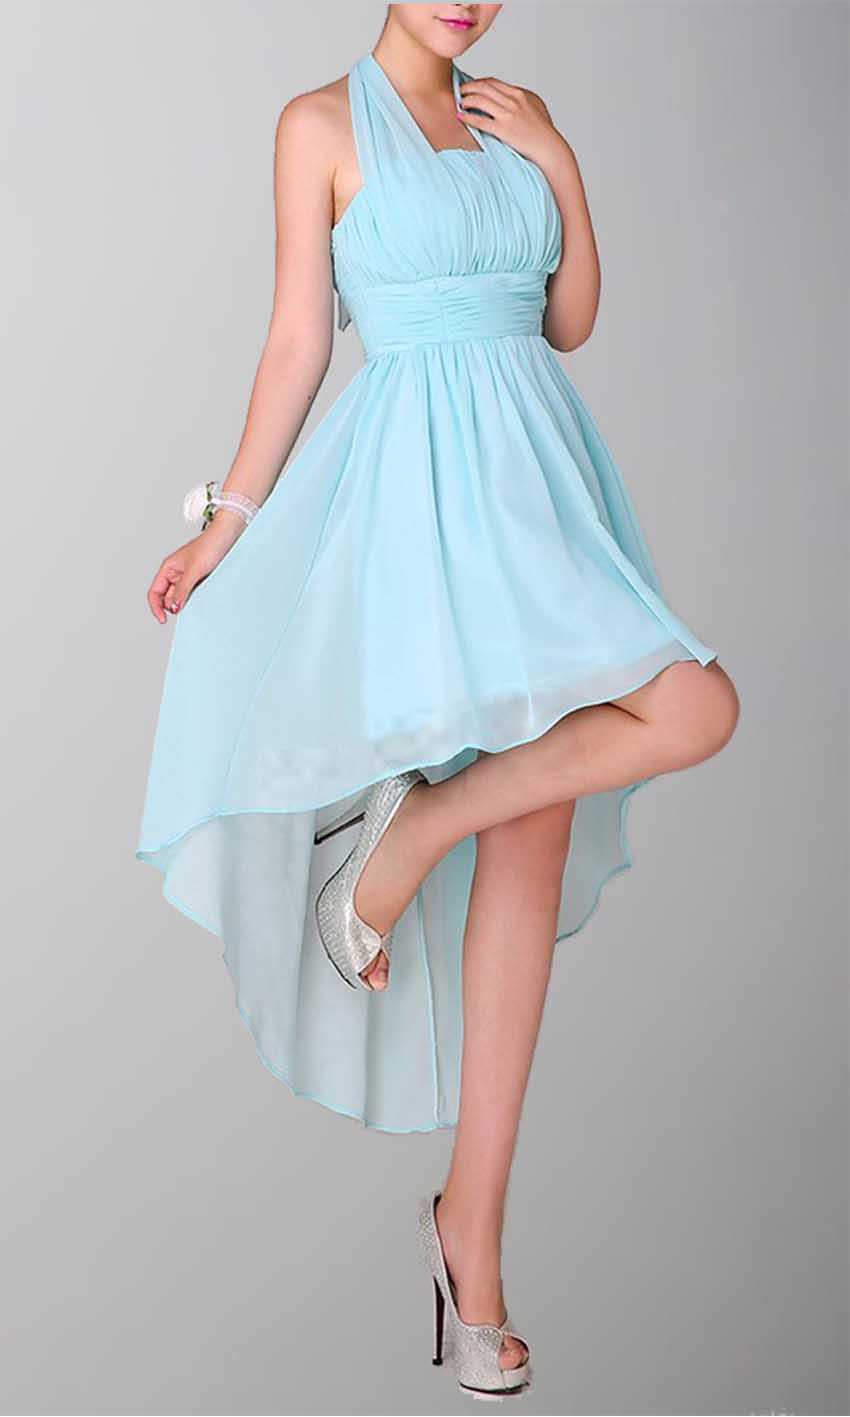 Unadorned Hatler Hi-low Chiffon Prom Dresses KSP073 [KSP073] - £78.00 : Cheap Prom Dresses Uk, Bridesmaid Dresses, 2014 Prom & Evening Dresses, Look for cheap elegant prom dresses 2014, cocktail gowns, or dresses for special occasions? kissprom.co.uk offers various bridesmaid dresses, evening dress, free shipping to UK etc.